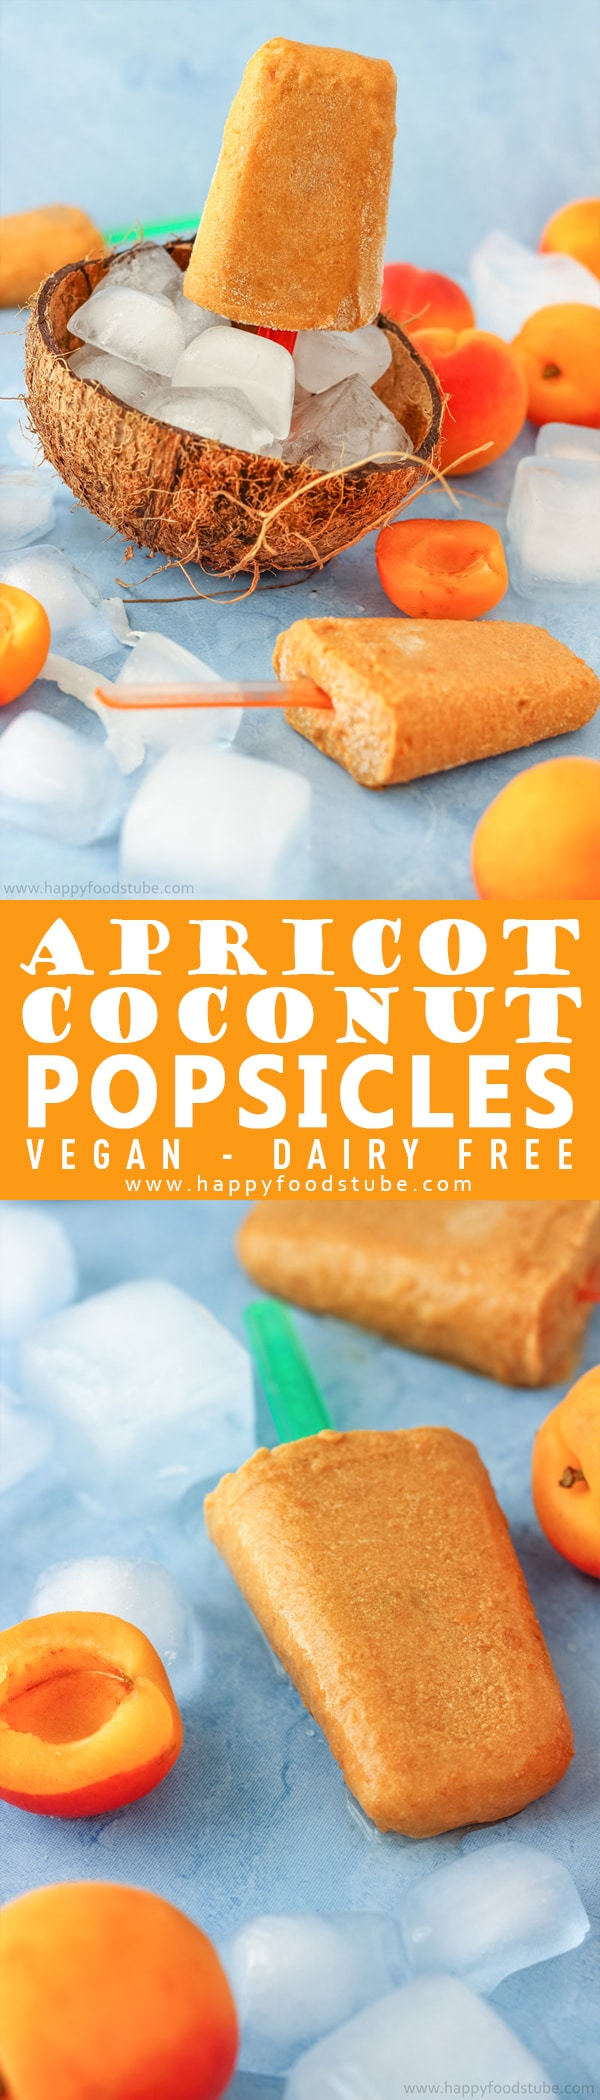 These apricot coconut popsicles are the perfect frozen treat. They are rich, refreshing and quick to make. Only 4-ingredients and ready in 10-minutes + vegan and dairy-free